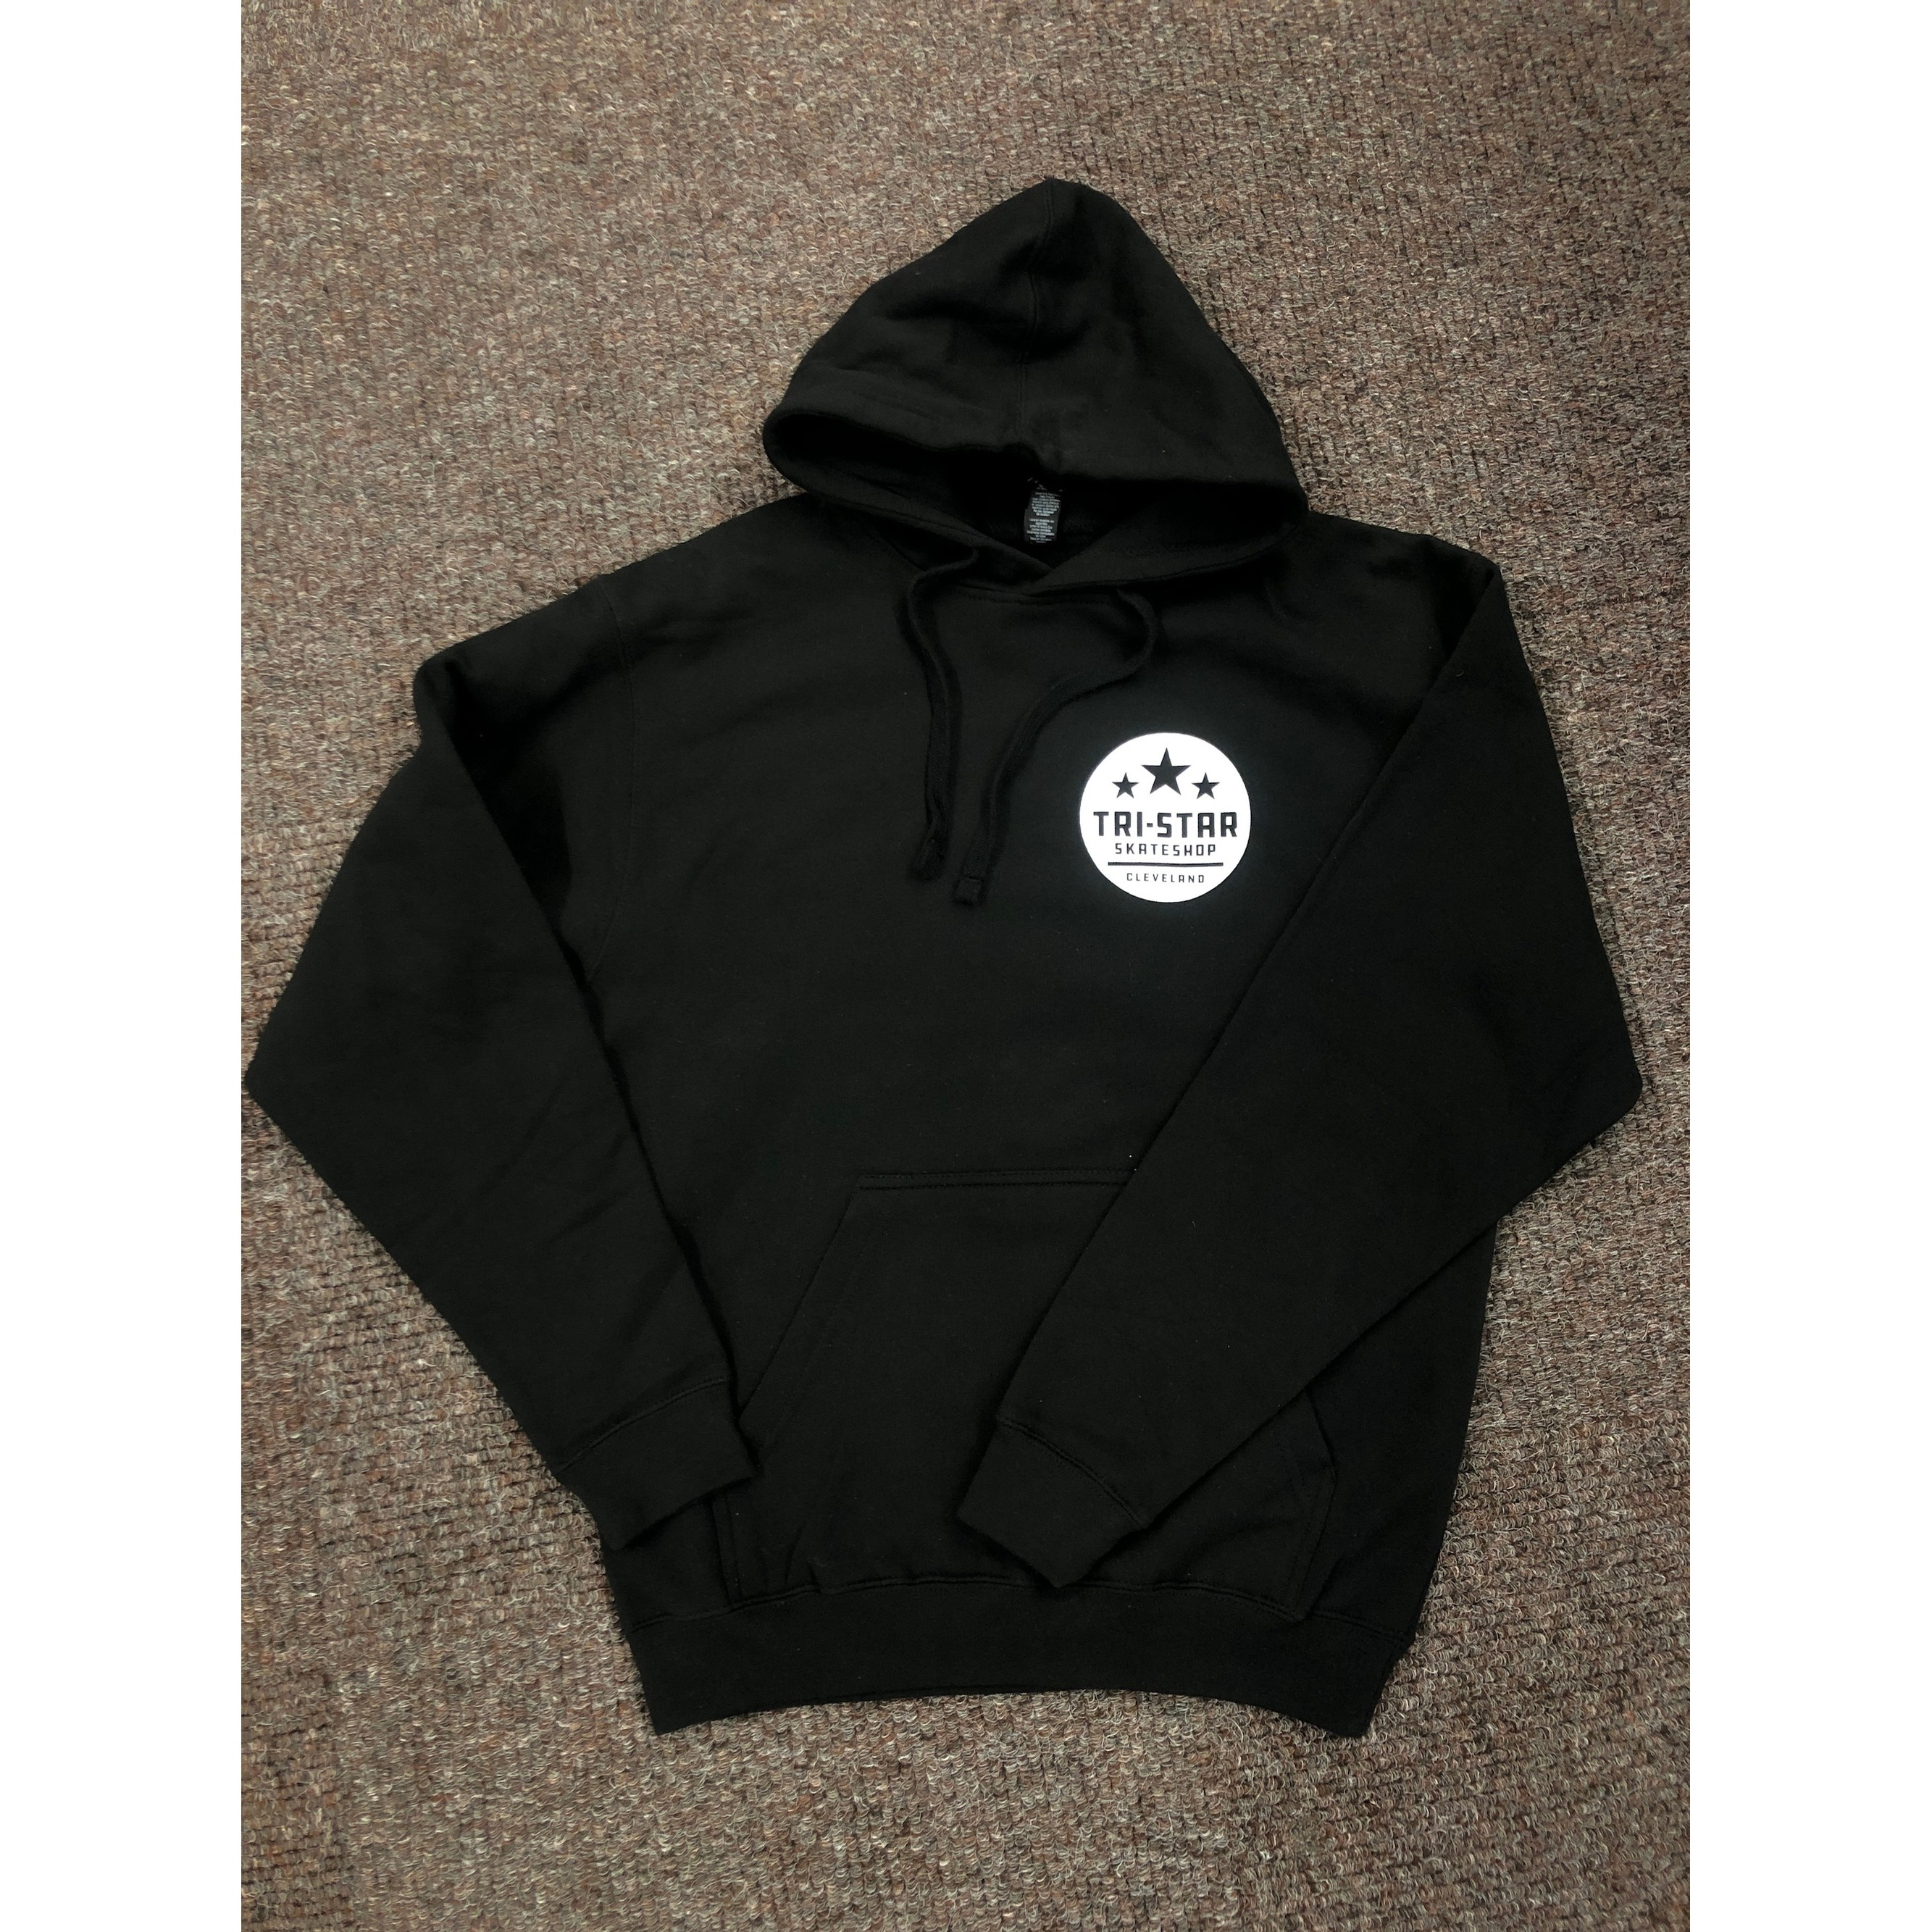 Circle Logo Black Shop Hoodie